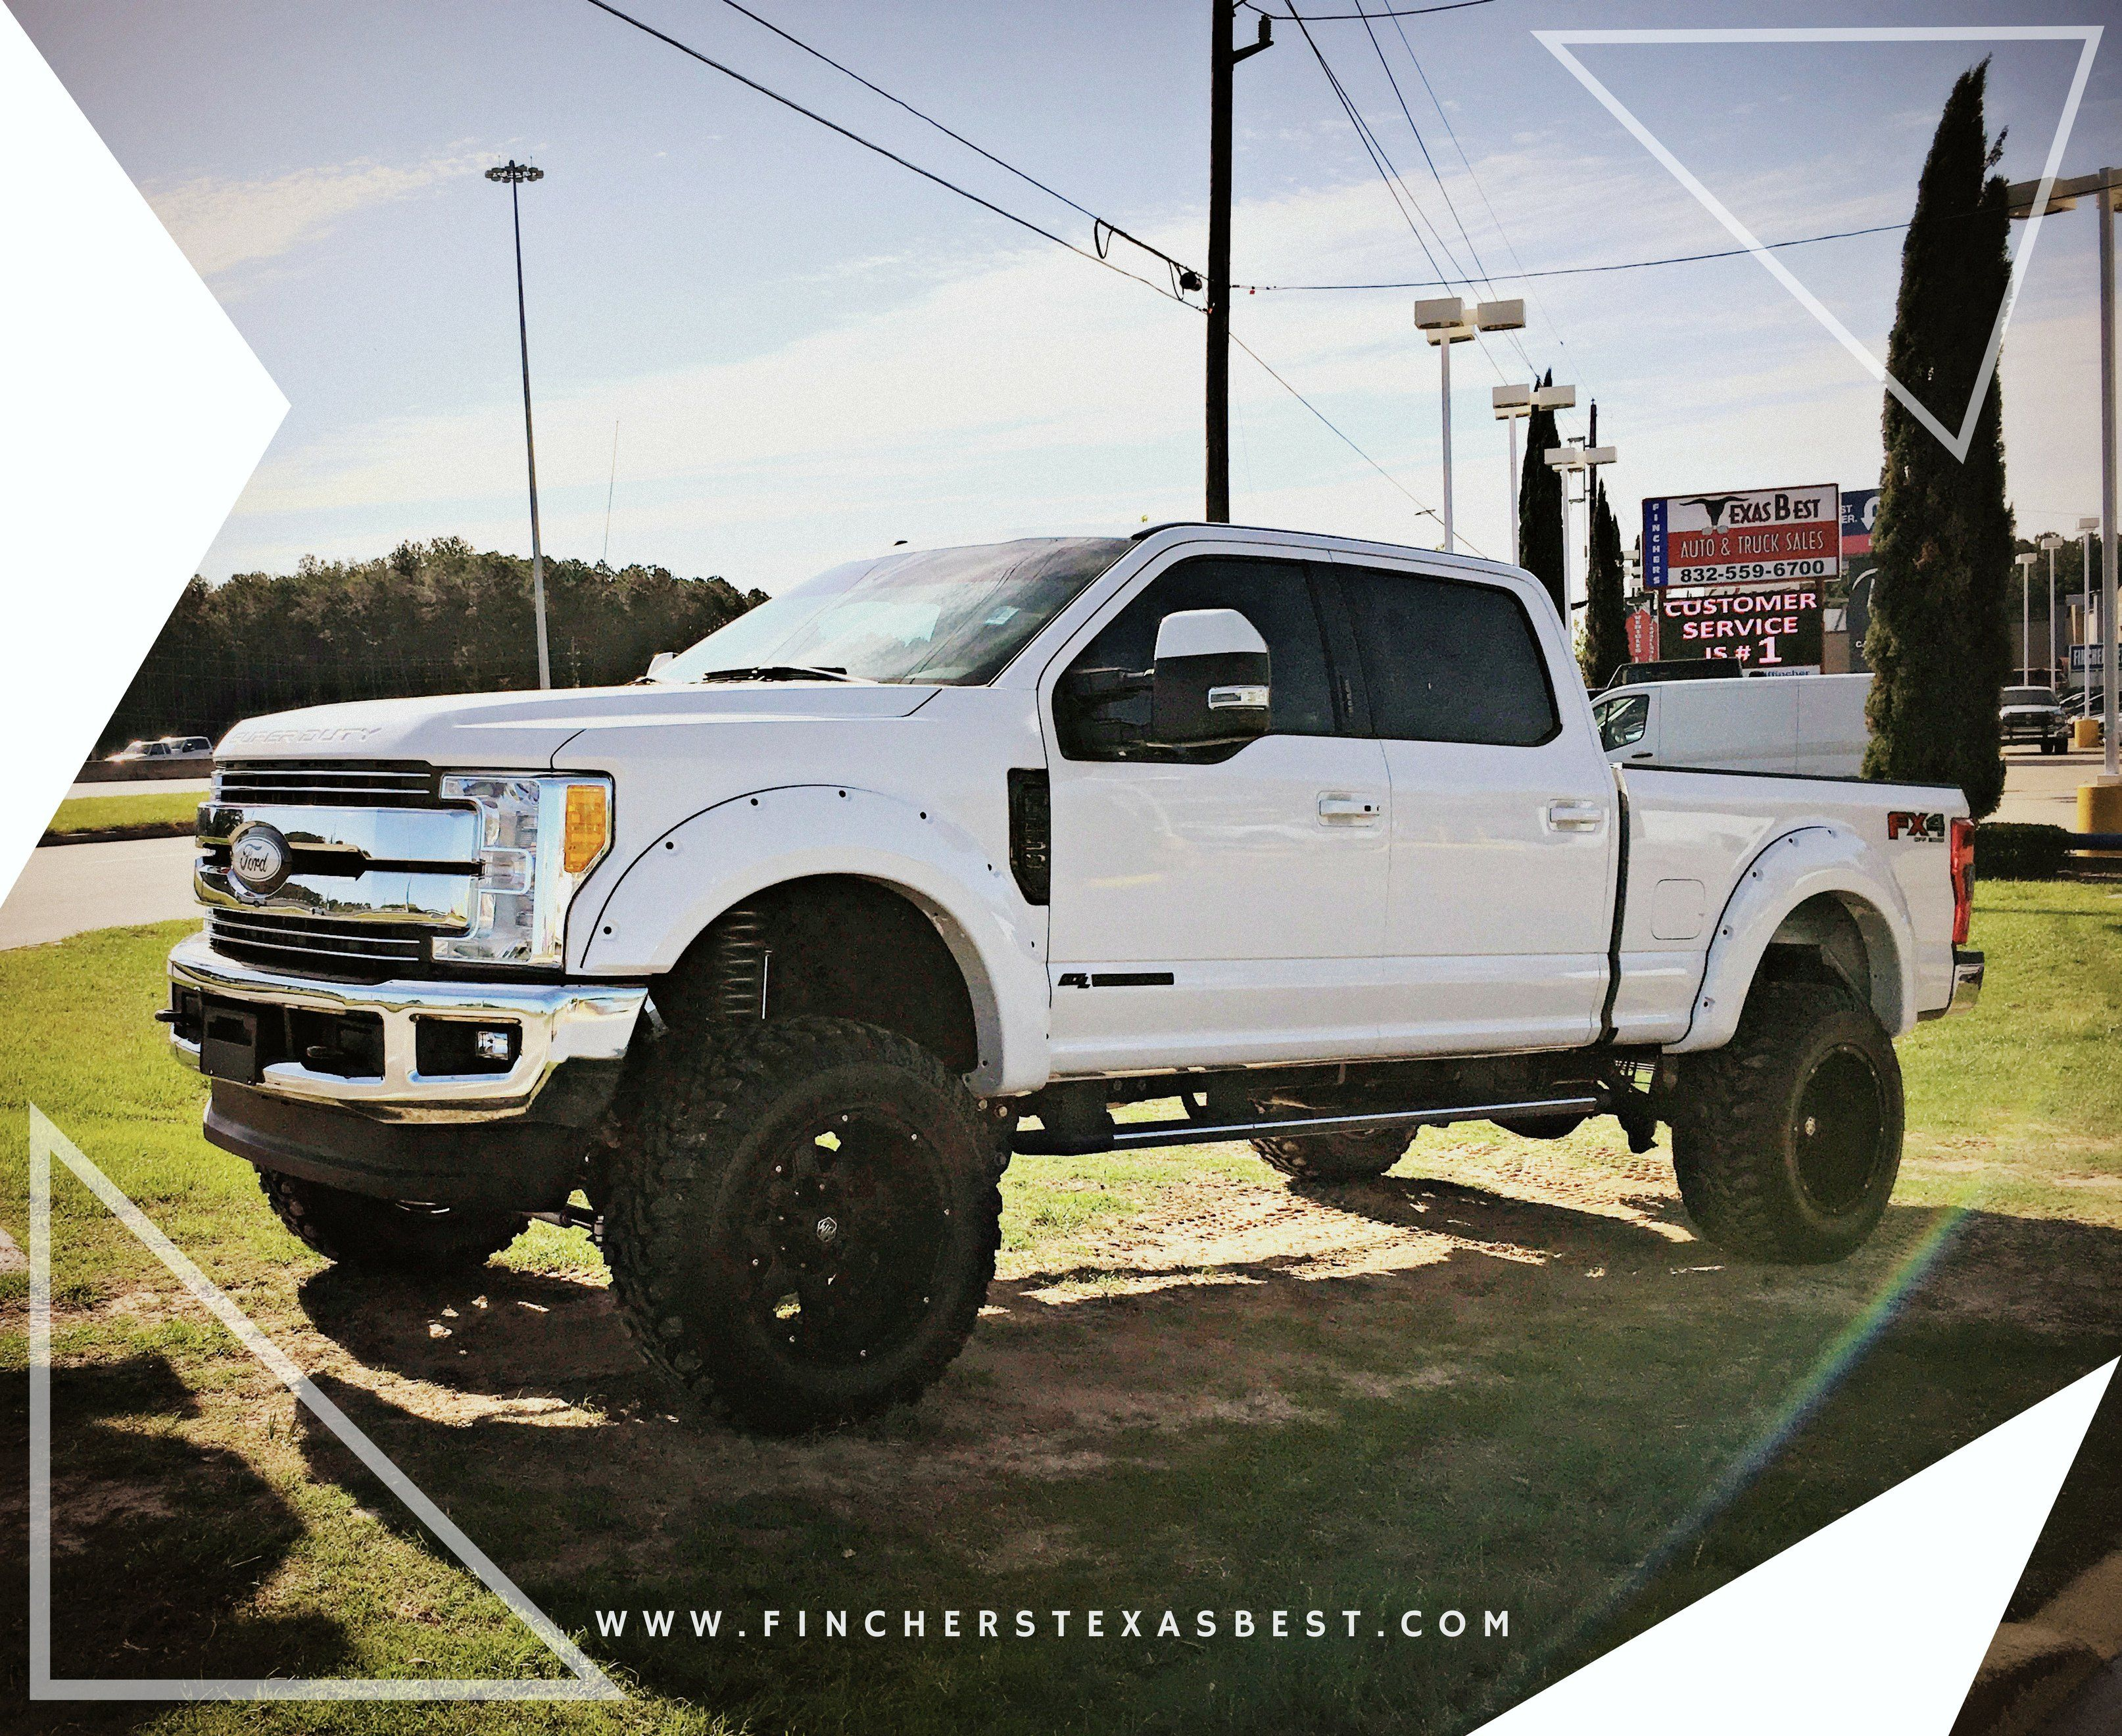 Custom Trucks For Sale Check Out This Custom Lifted 2017 Ford F250 Lariat Truck For Sale At Fincher S Texas Best Diesel Trucks Lifted Trucks Ford Trucks